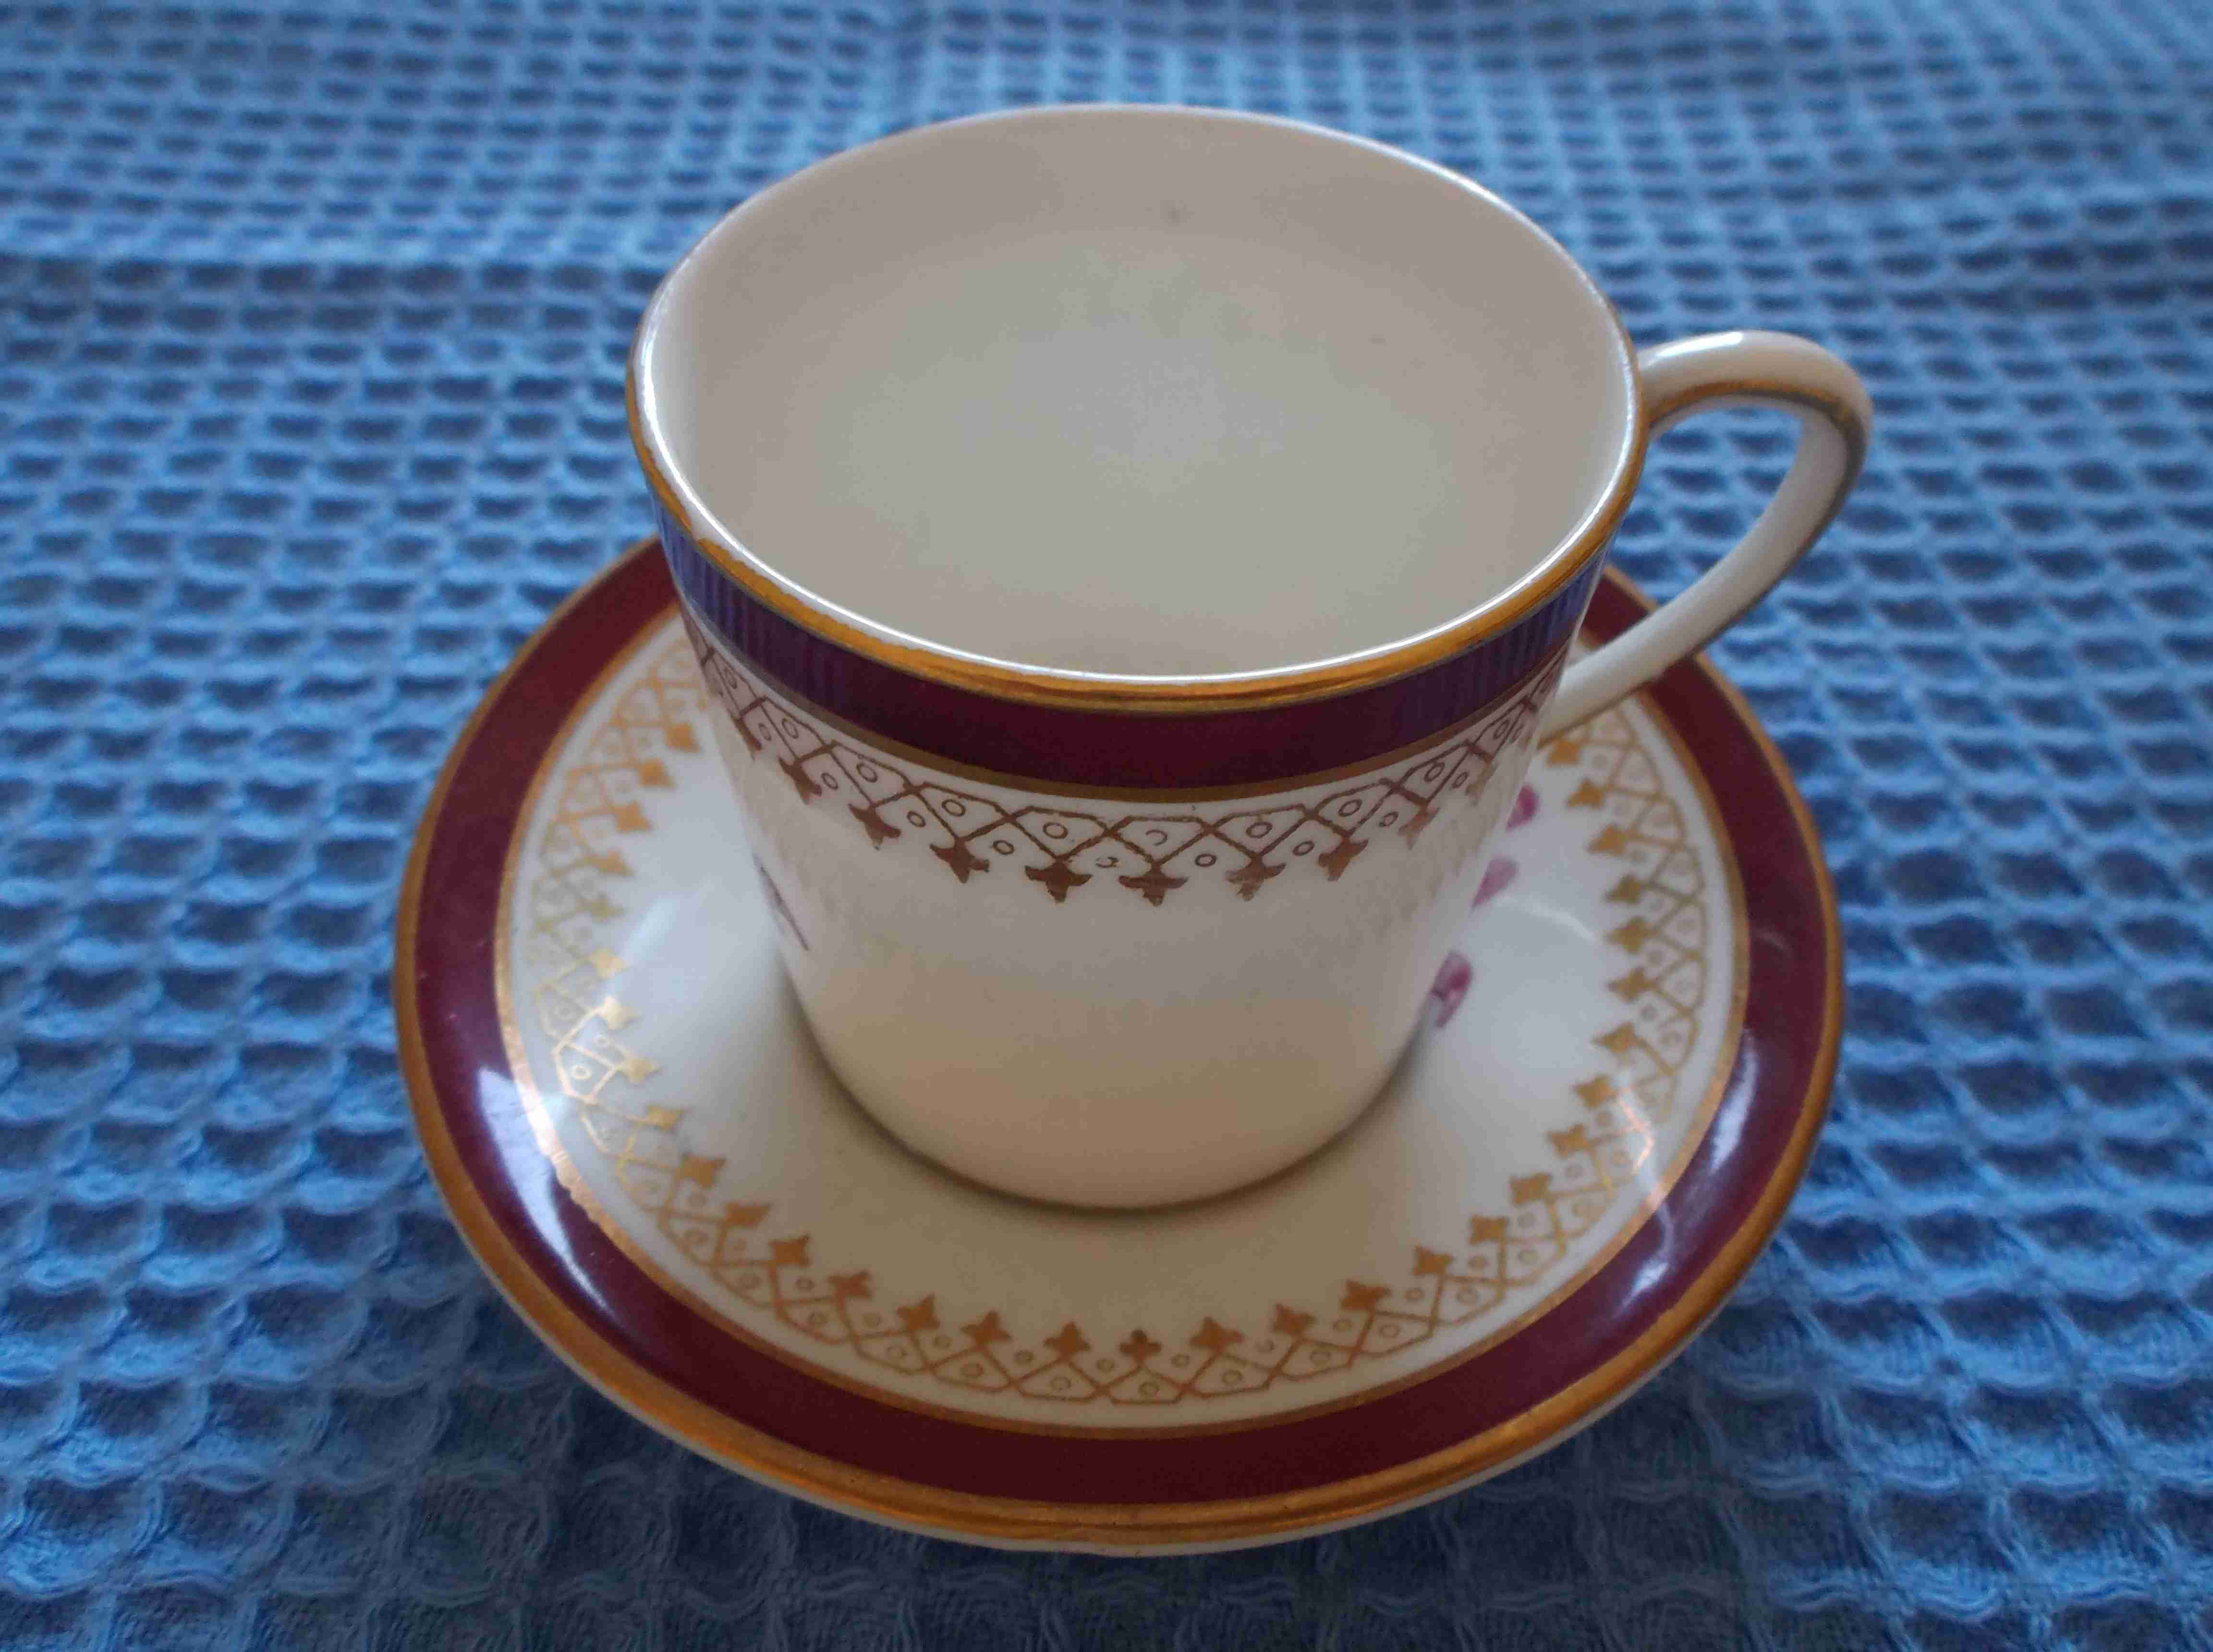 SOUVENIR MARITIME CUP AND SAUCER FROM UNKNOWN SOURCE